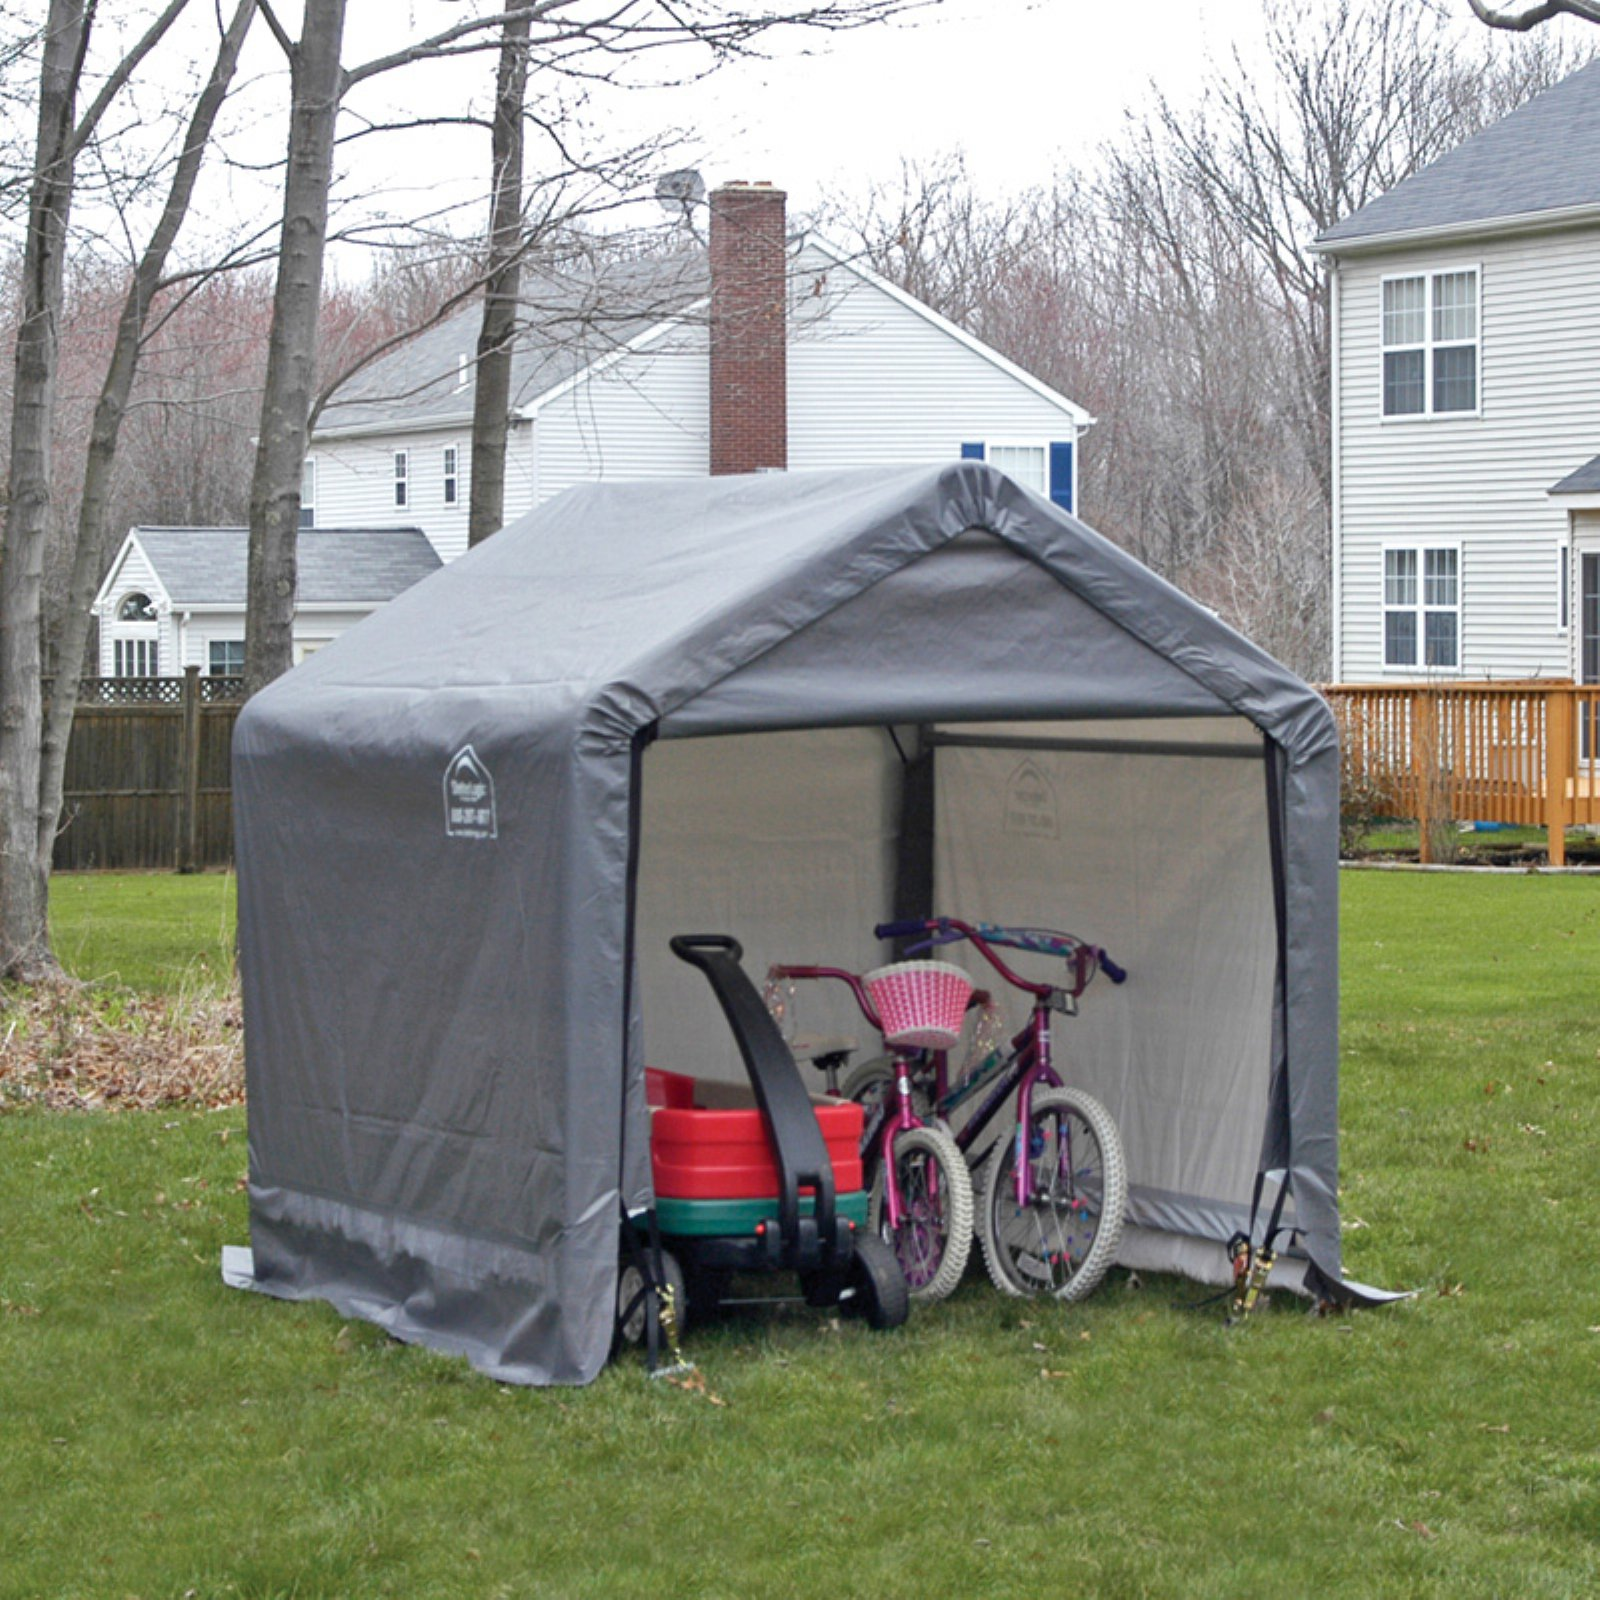 Shed-in-a-Box 6' x 6' x 6' Peak Style Storage Shed, Gray by ShelterLogic